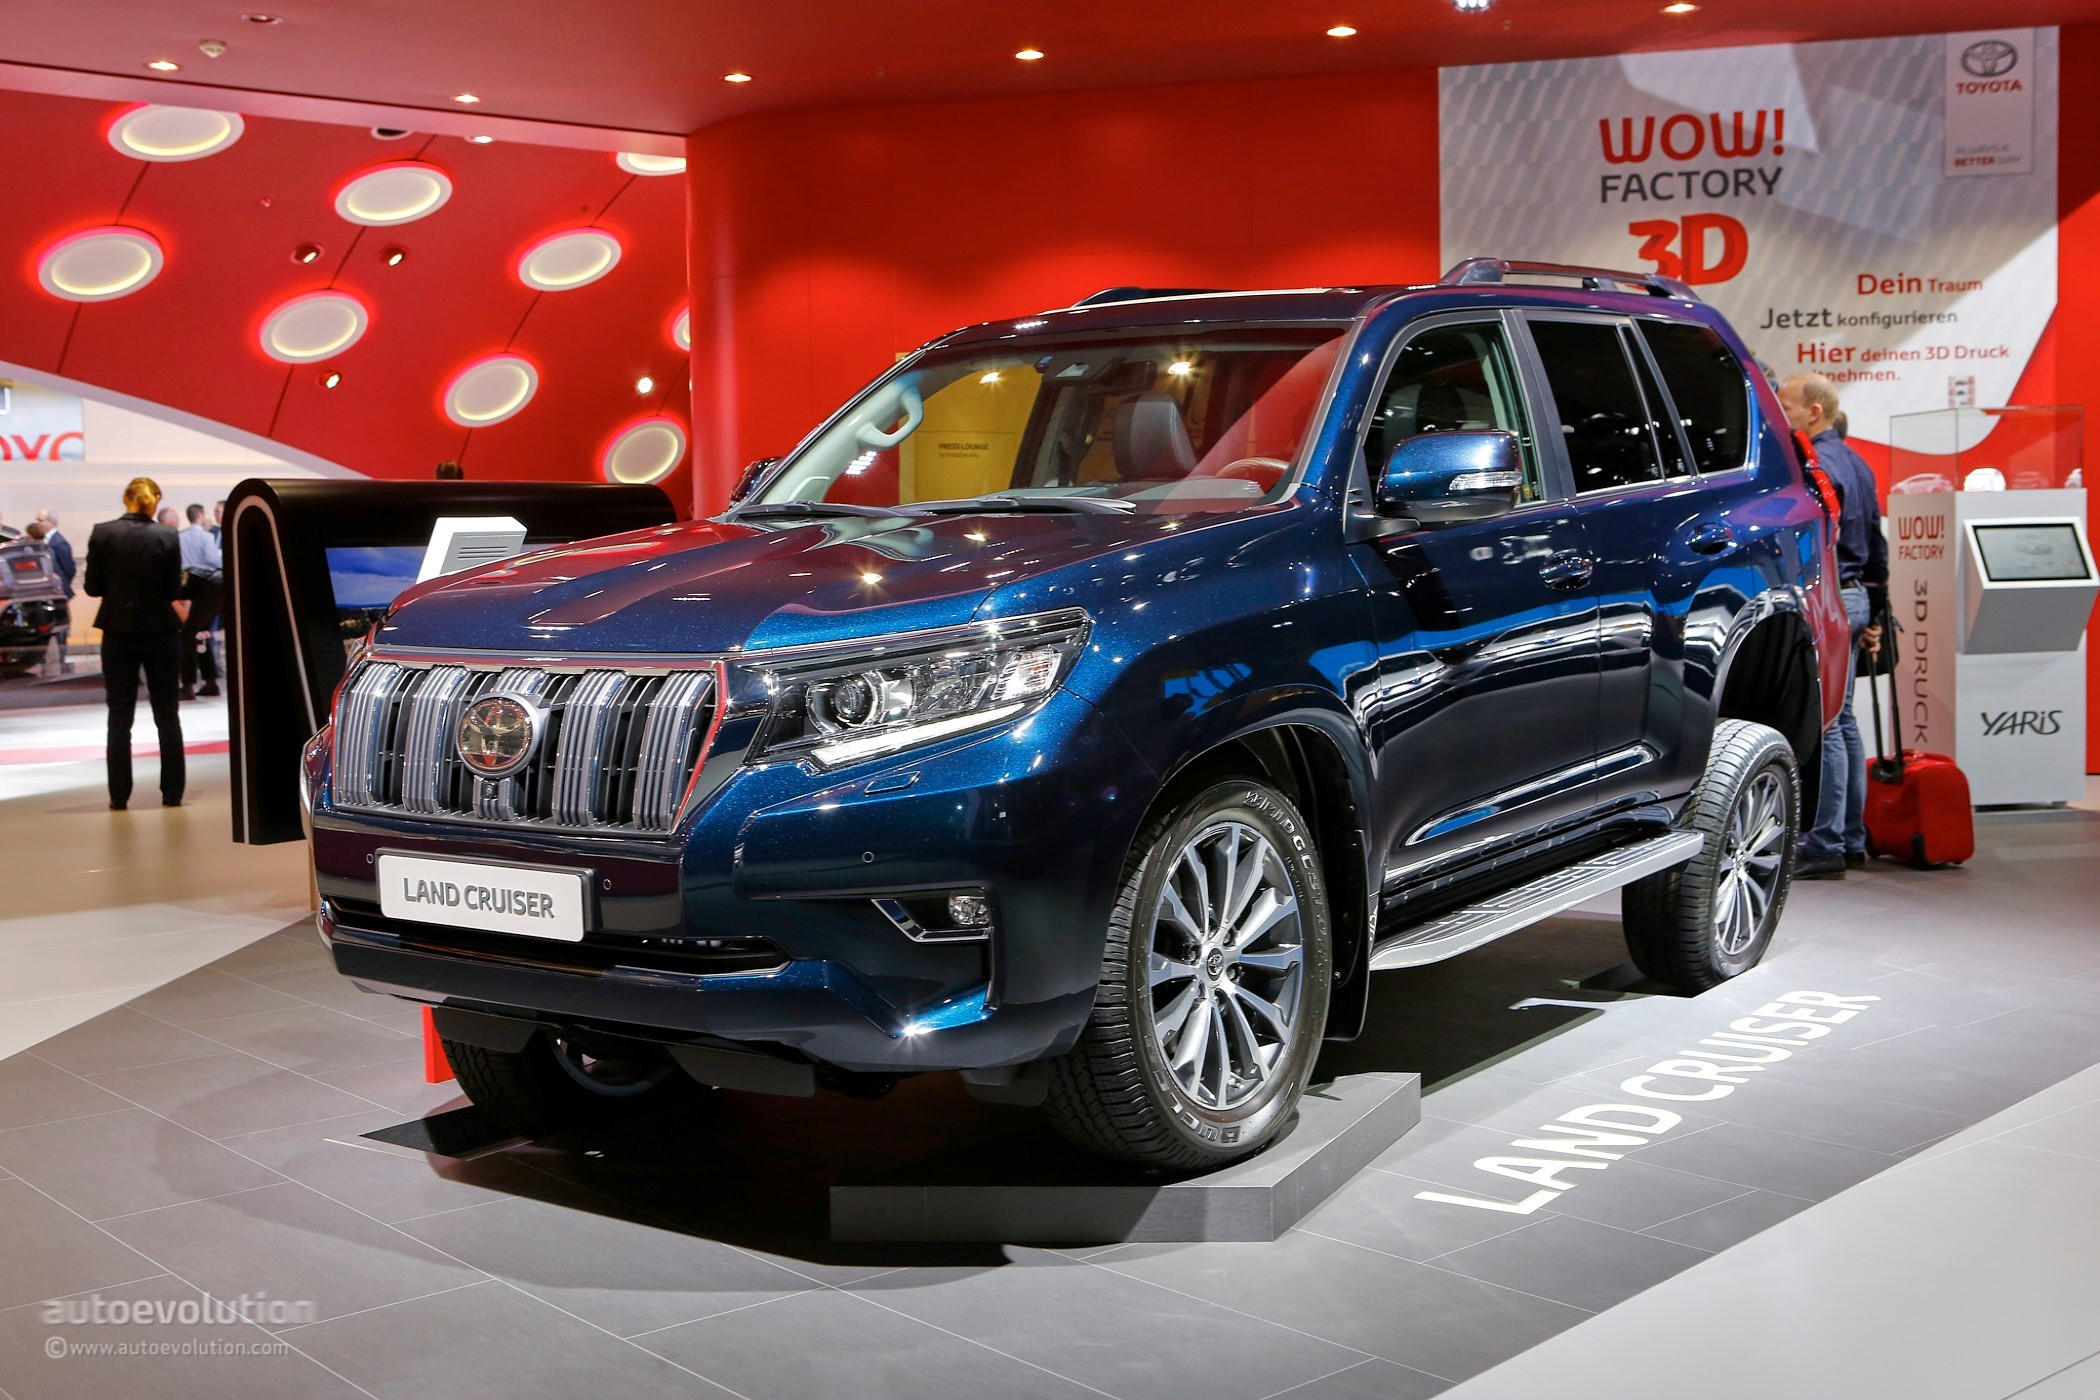 2018 Toyota Land Cruiser Prado Facelift Drops By Frankfurt To Say Hi - autoevolution